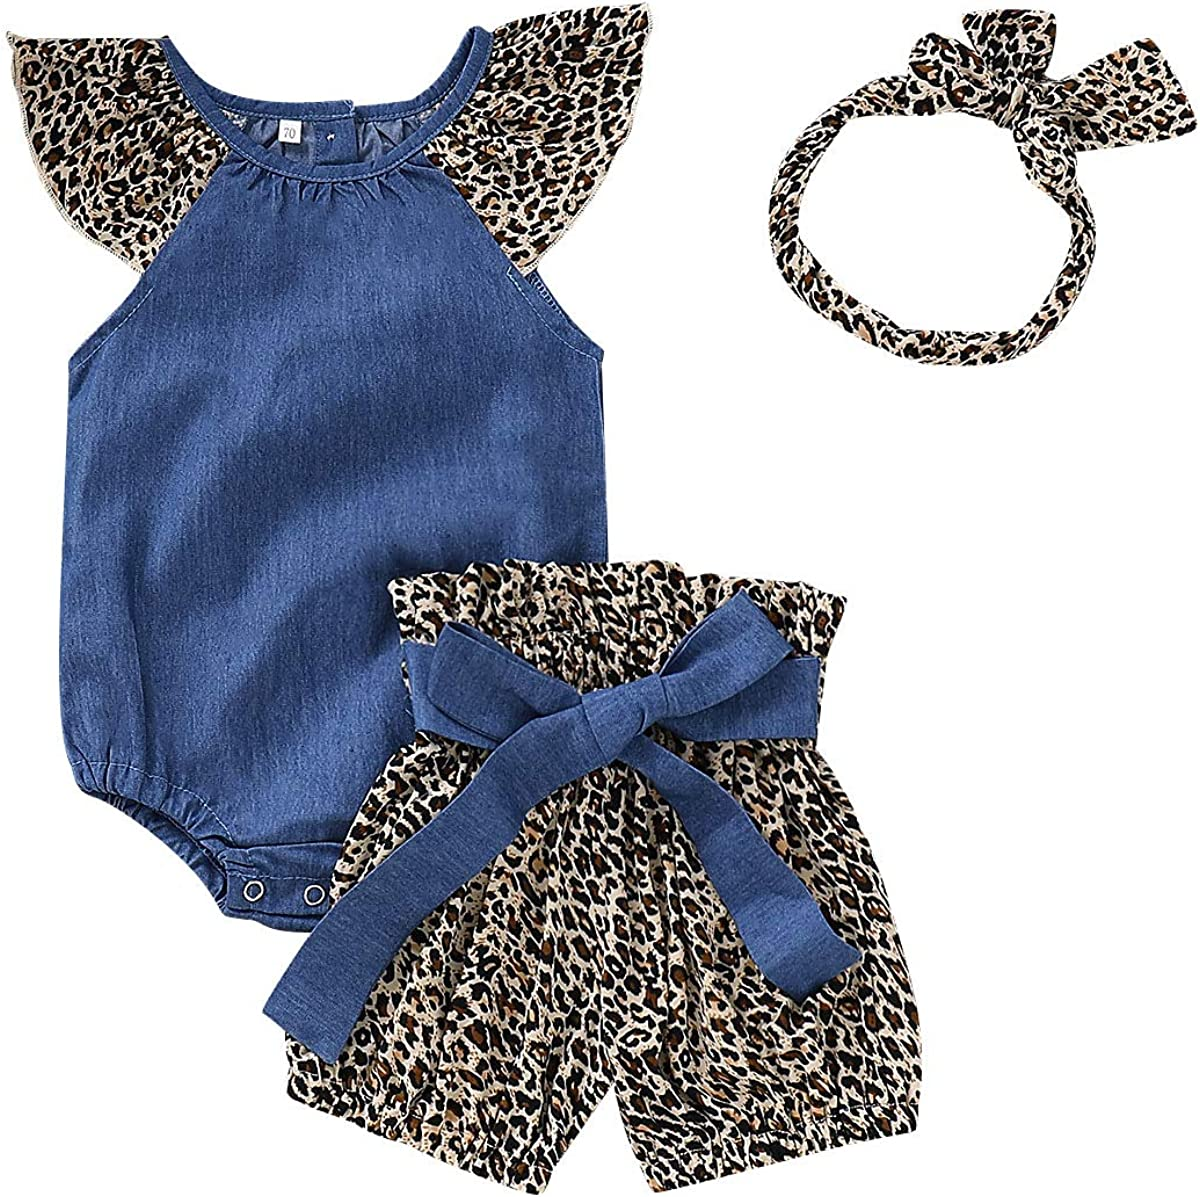 Headband Cute Outfits Set Leopard Shorts KIDSA 0-24M Baby Toddler Girl Summer Clothes Fly Sleeve Denim Romper